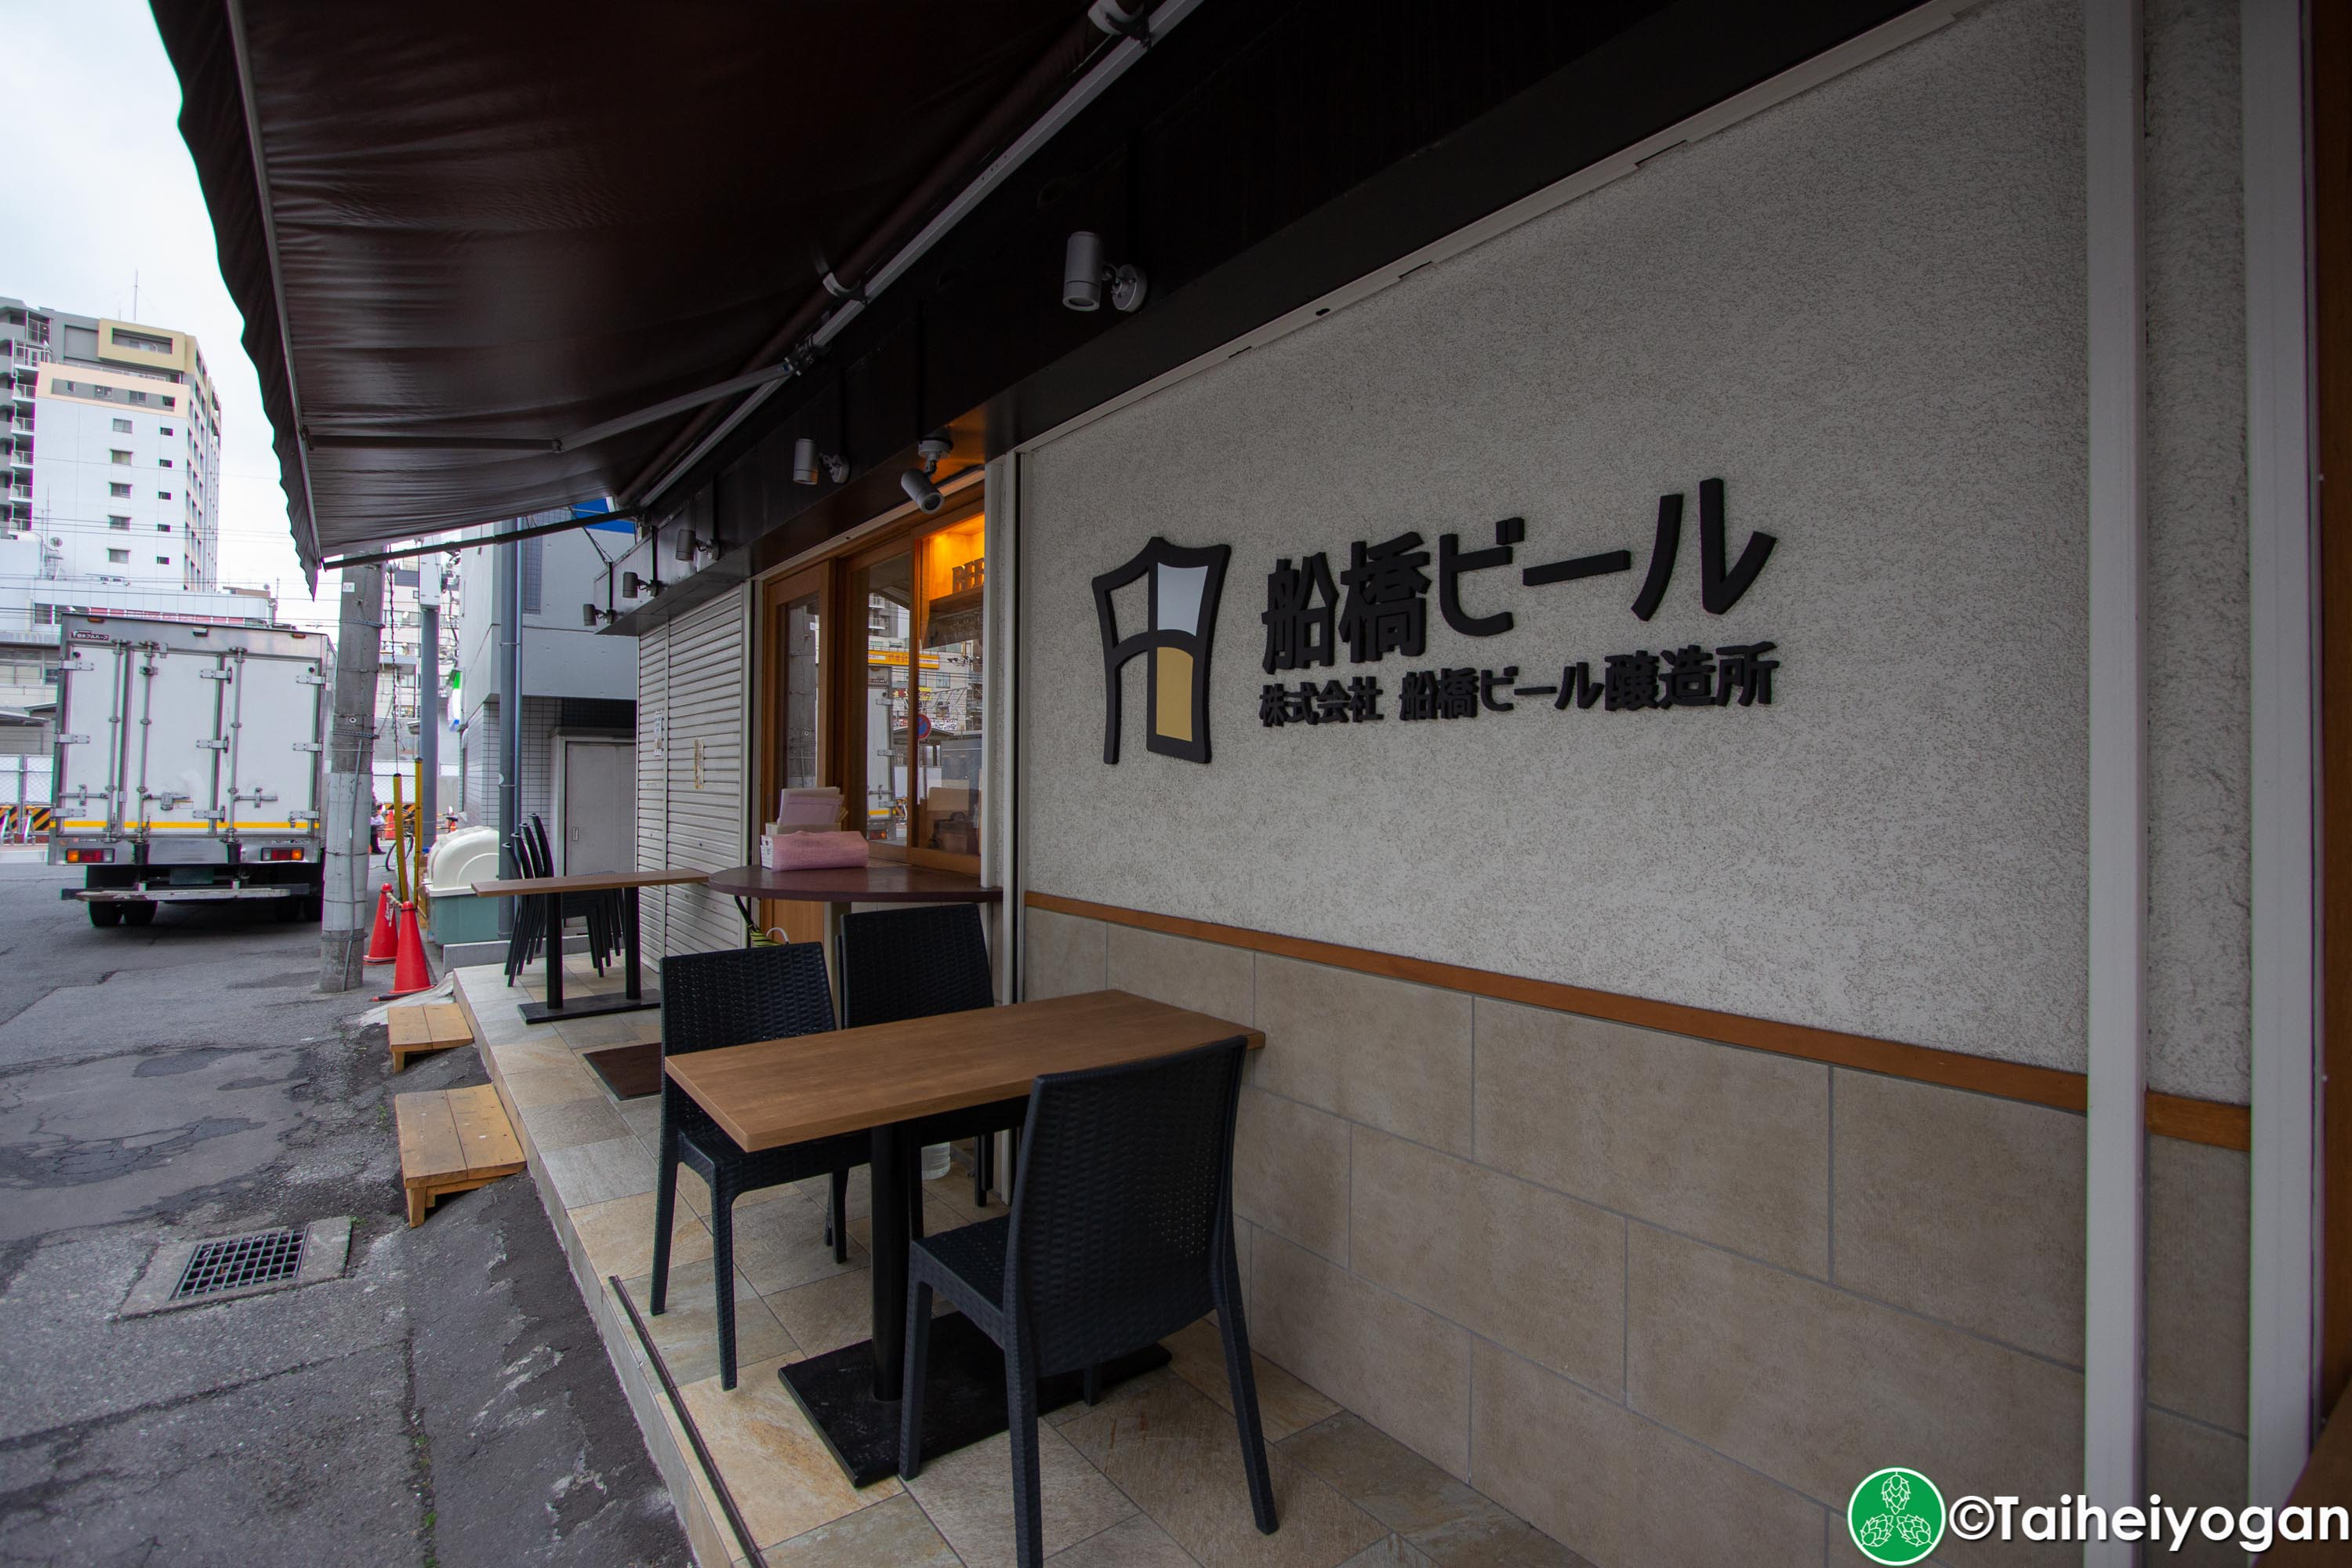 Funabashi Beer - 船橋ビール醸造所 - Outdoor Seating